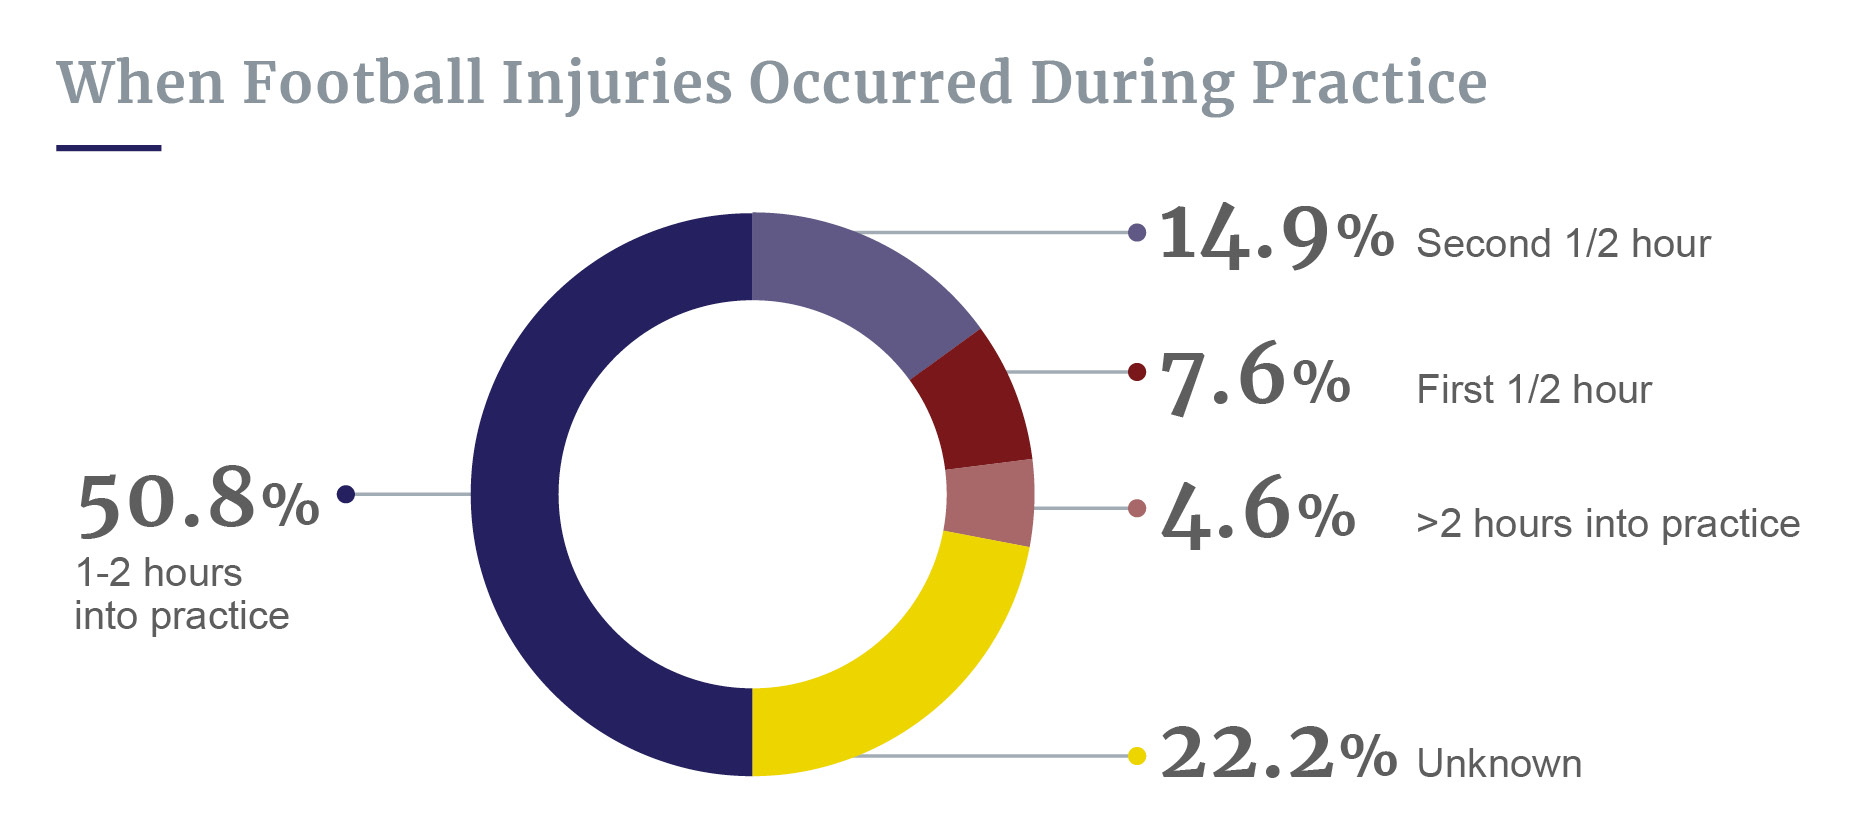 Football injuries during practice